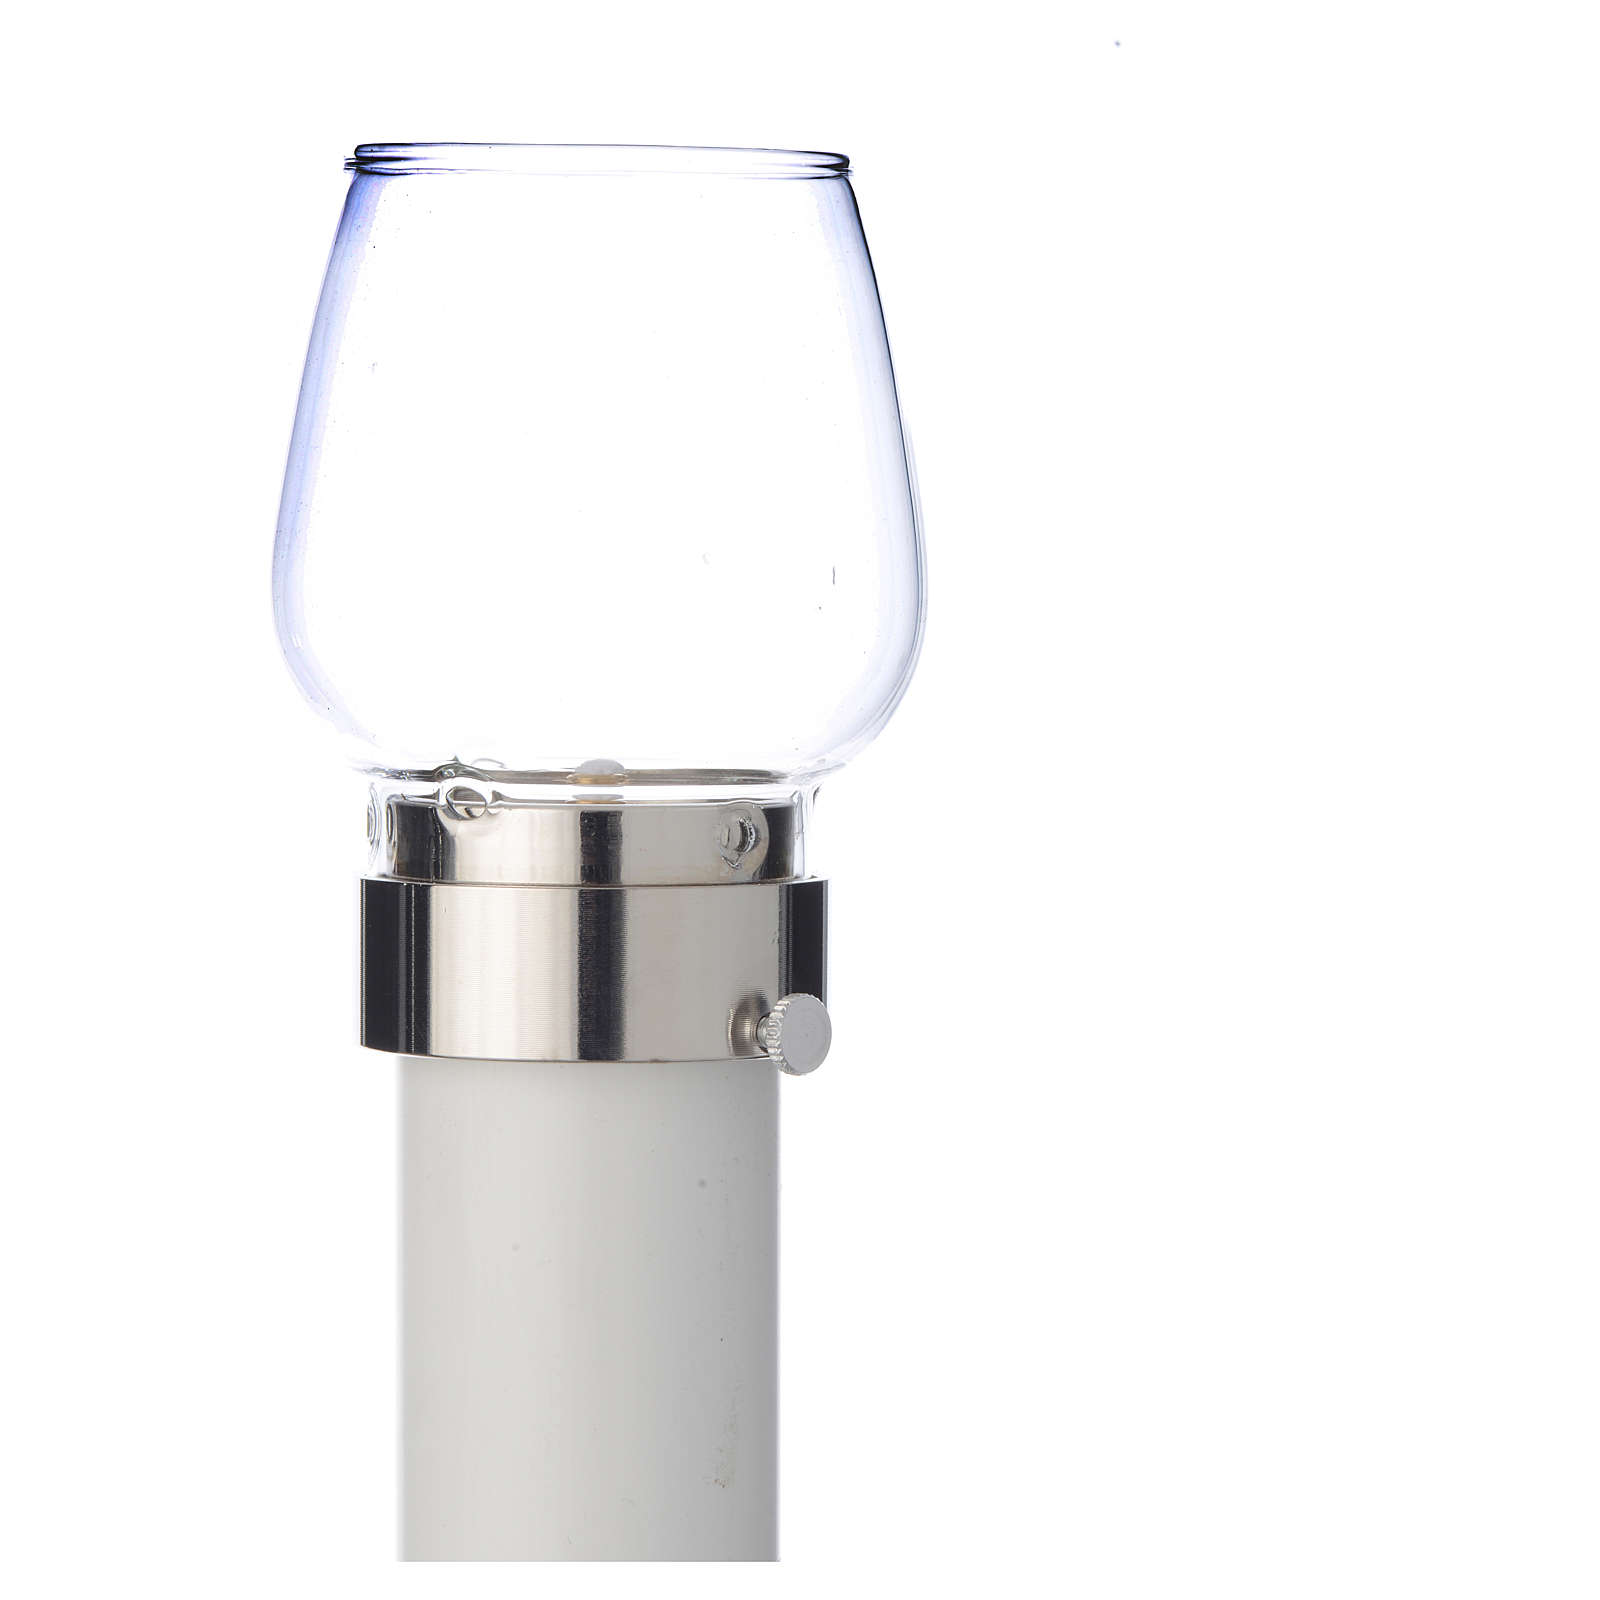 Wind-proof lamp, 70cm tall with silver base, 5cm diameter 3